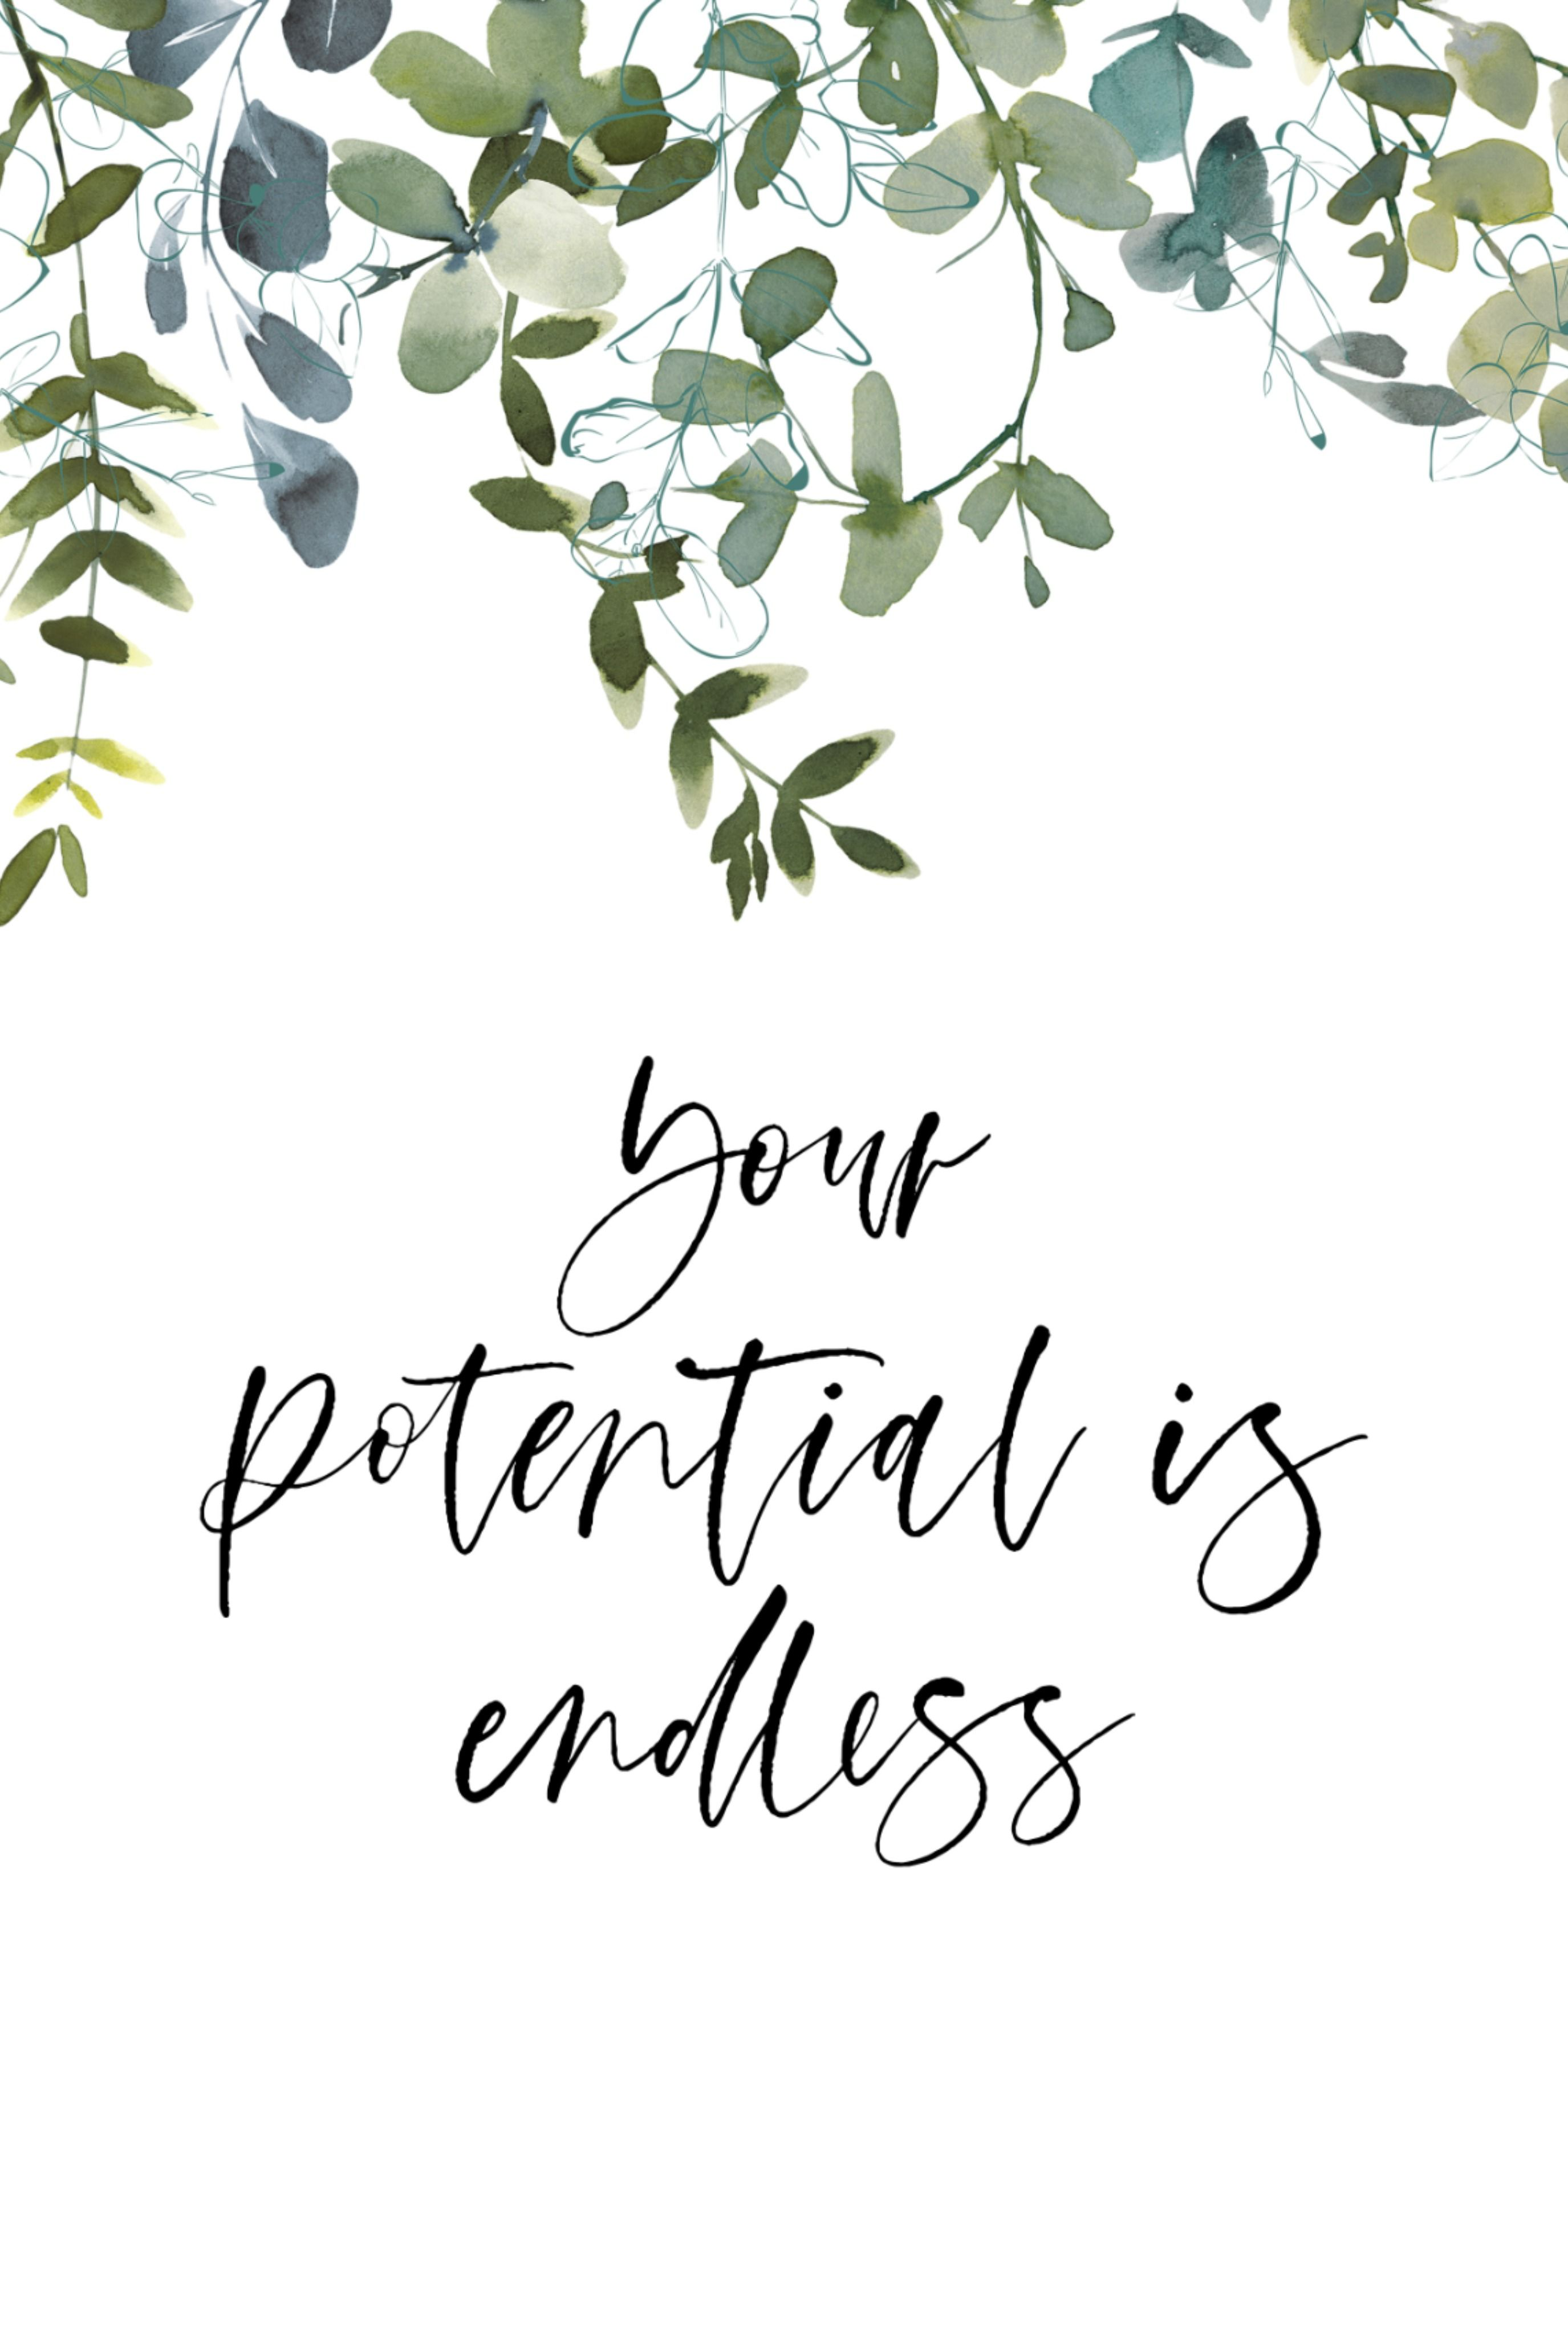 Your Potential Is Endless Greenery Quotes Inspirational Wall Art Printable Quotes Greenery Printable Greenery Sign Digital Art Print In 2020 Greenery Quotes Inspirational Wall Art Pretty Quotes